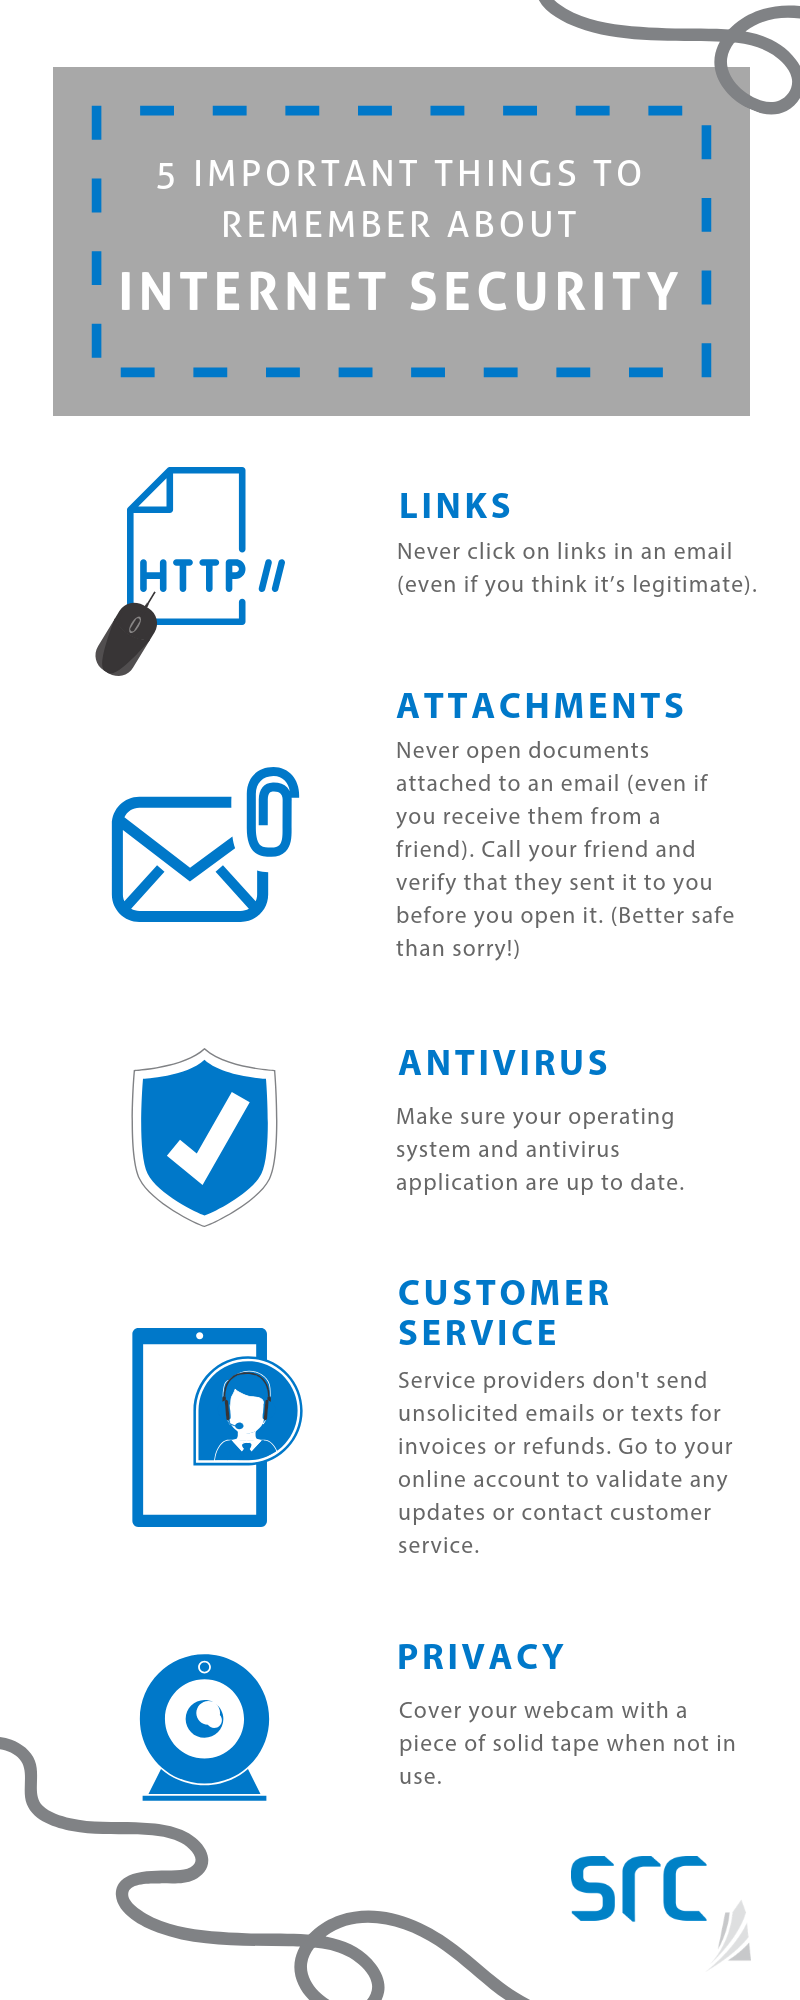 src five things to remember about internet security infographic